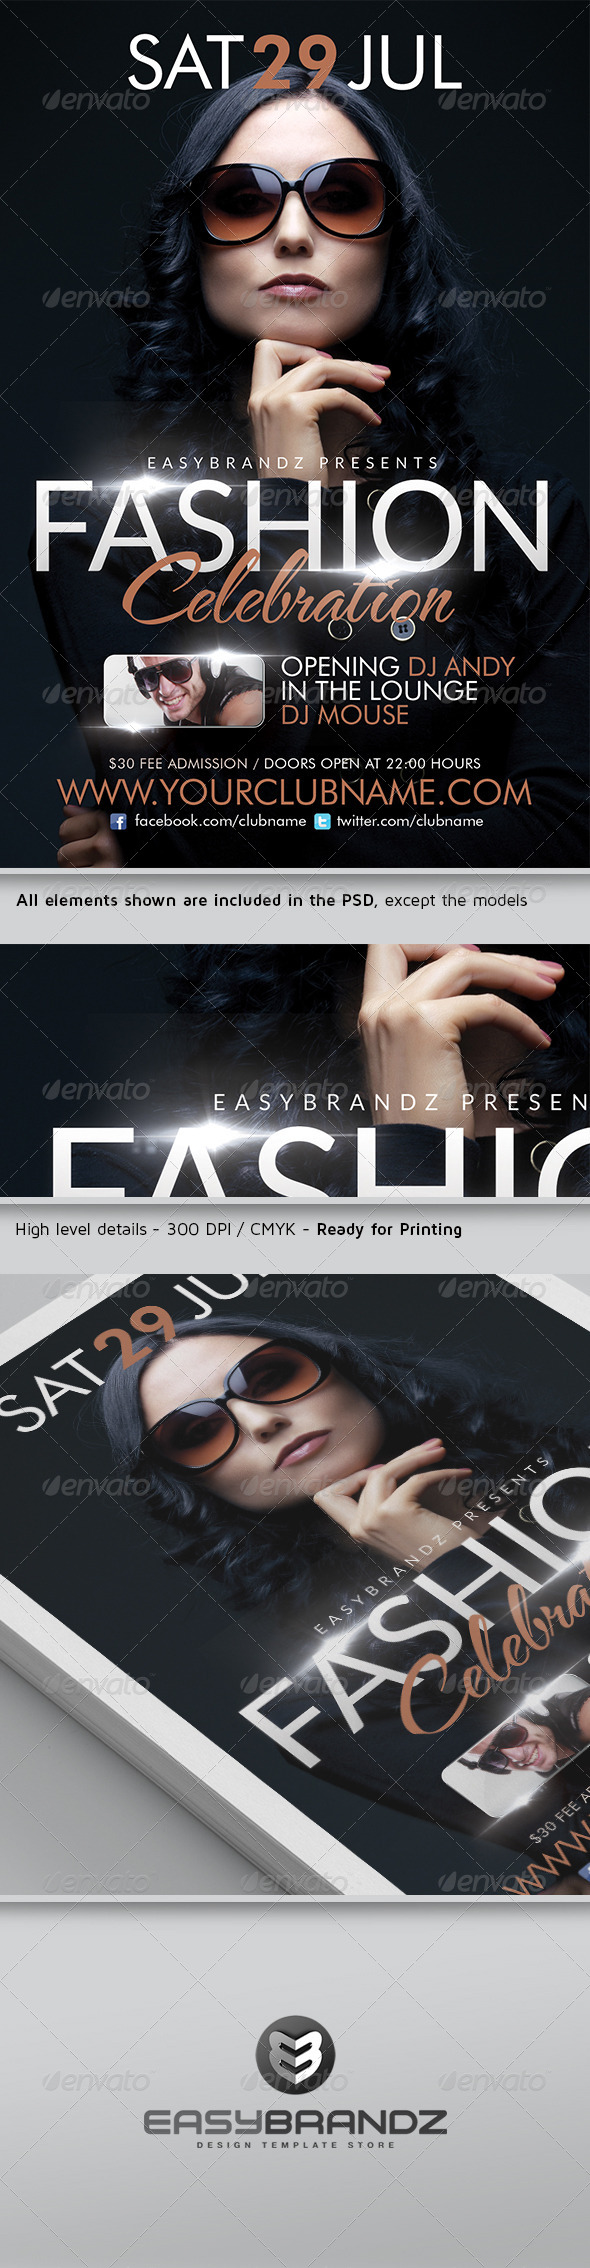 Fashion Celebration Flyer Template - Events Flyers